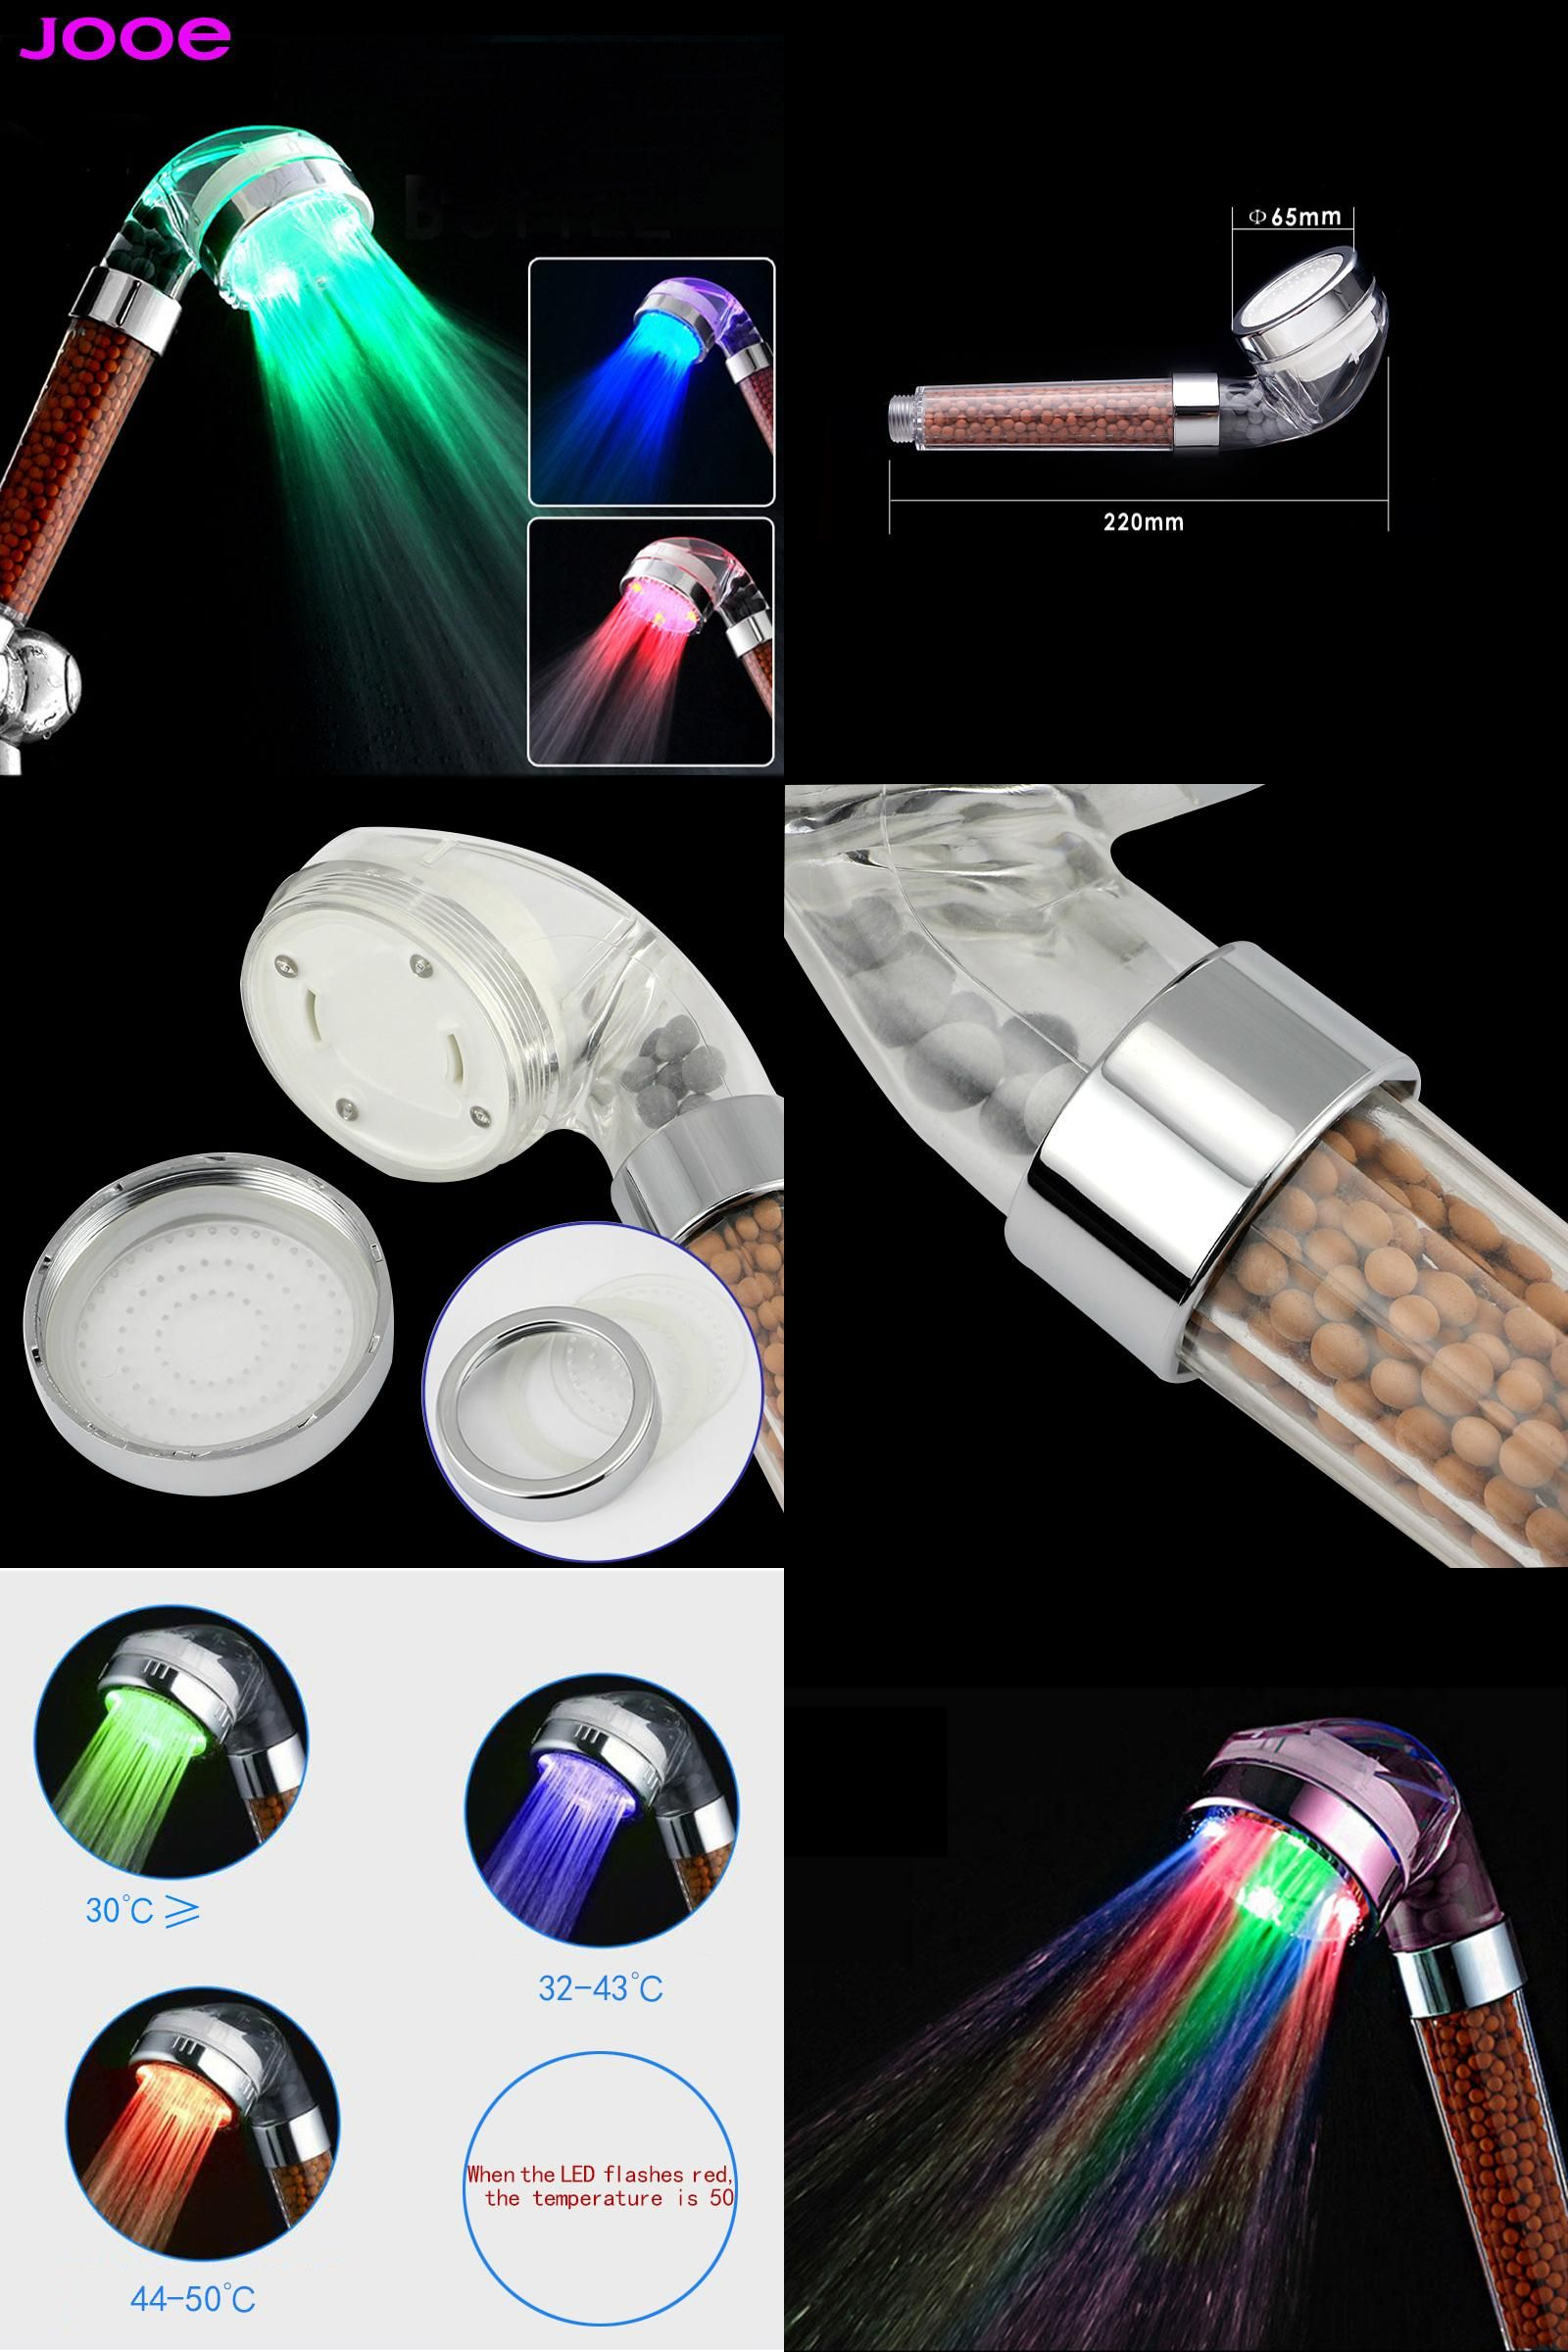 Visit to Buy] jooe led light shower heads spa Negative ion